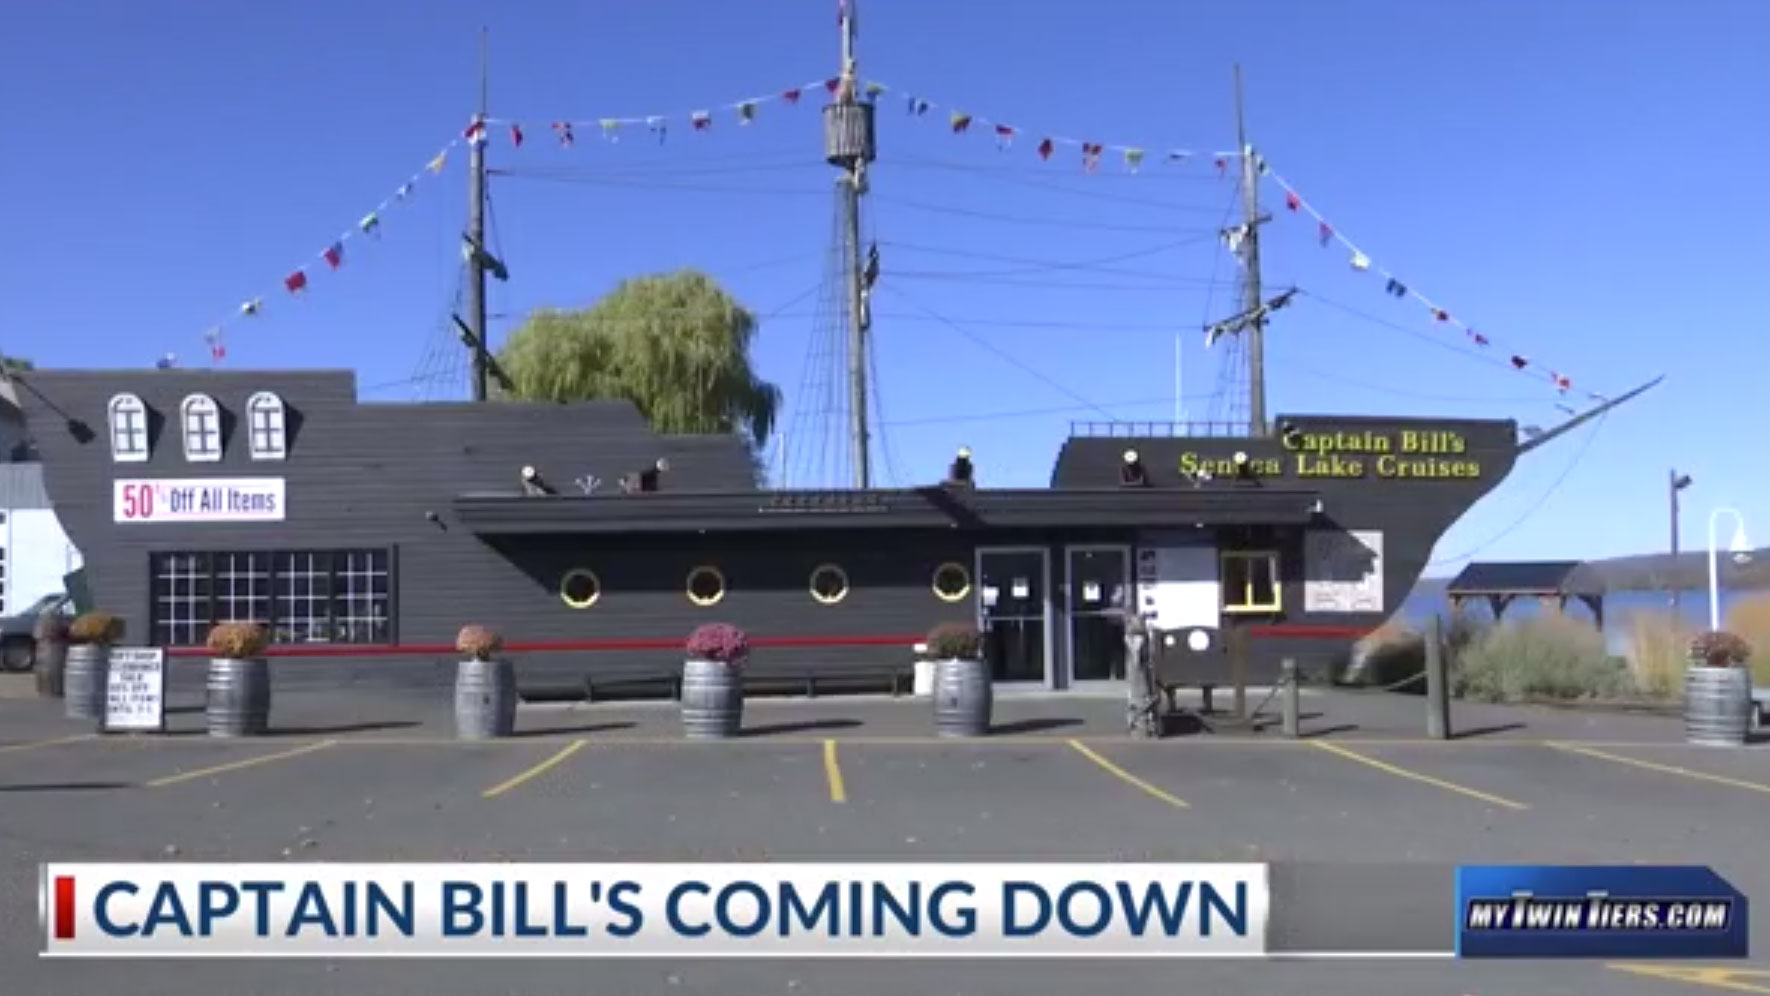 Captain Bill's building closing in Watkins Glen